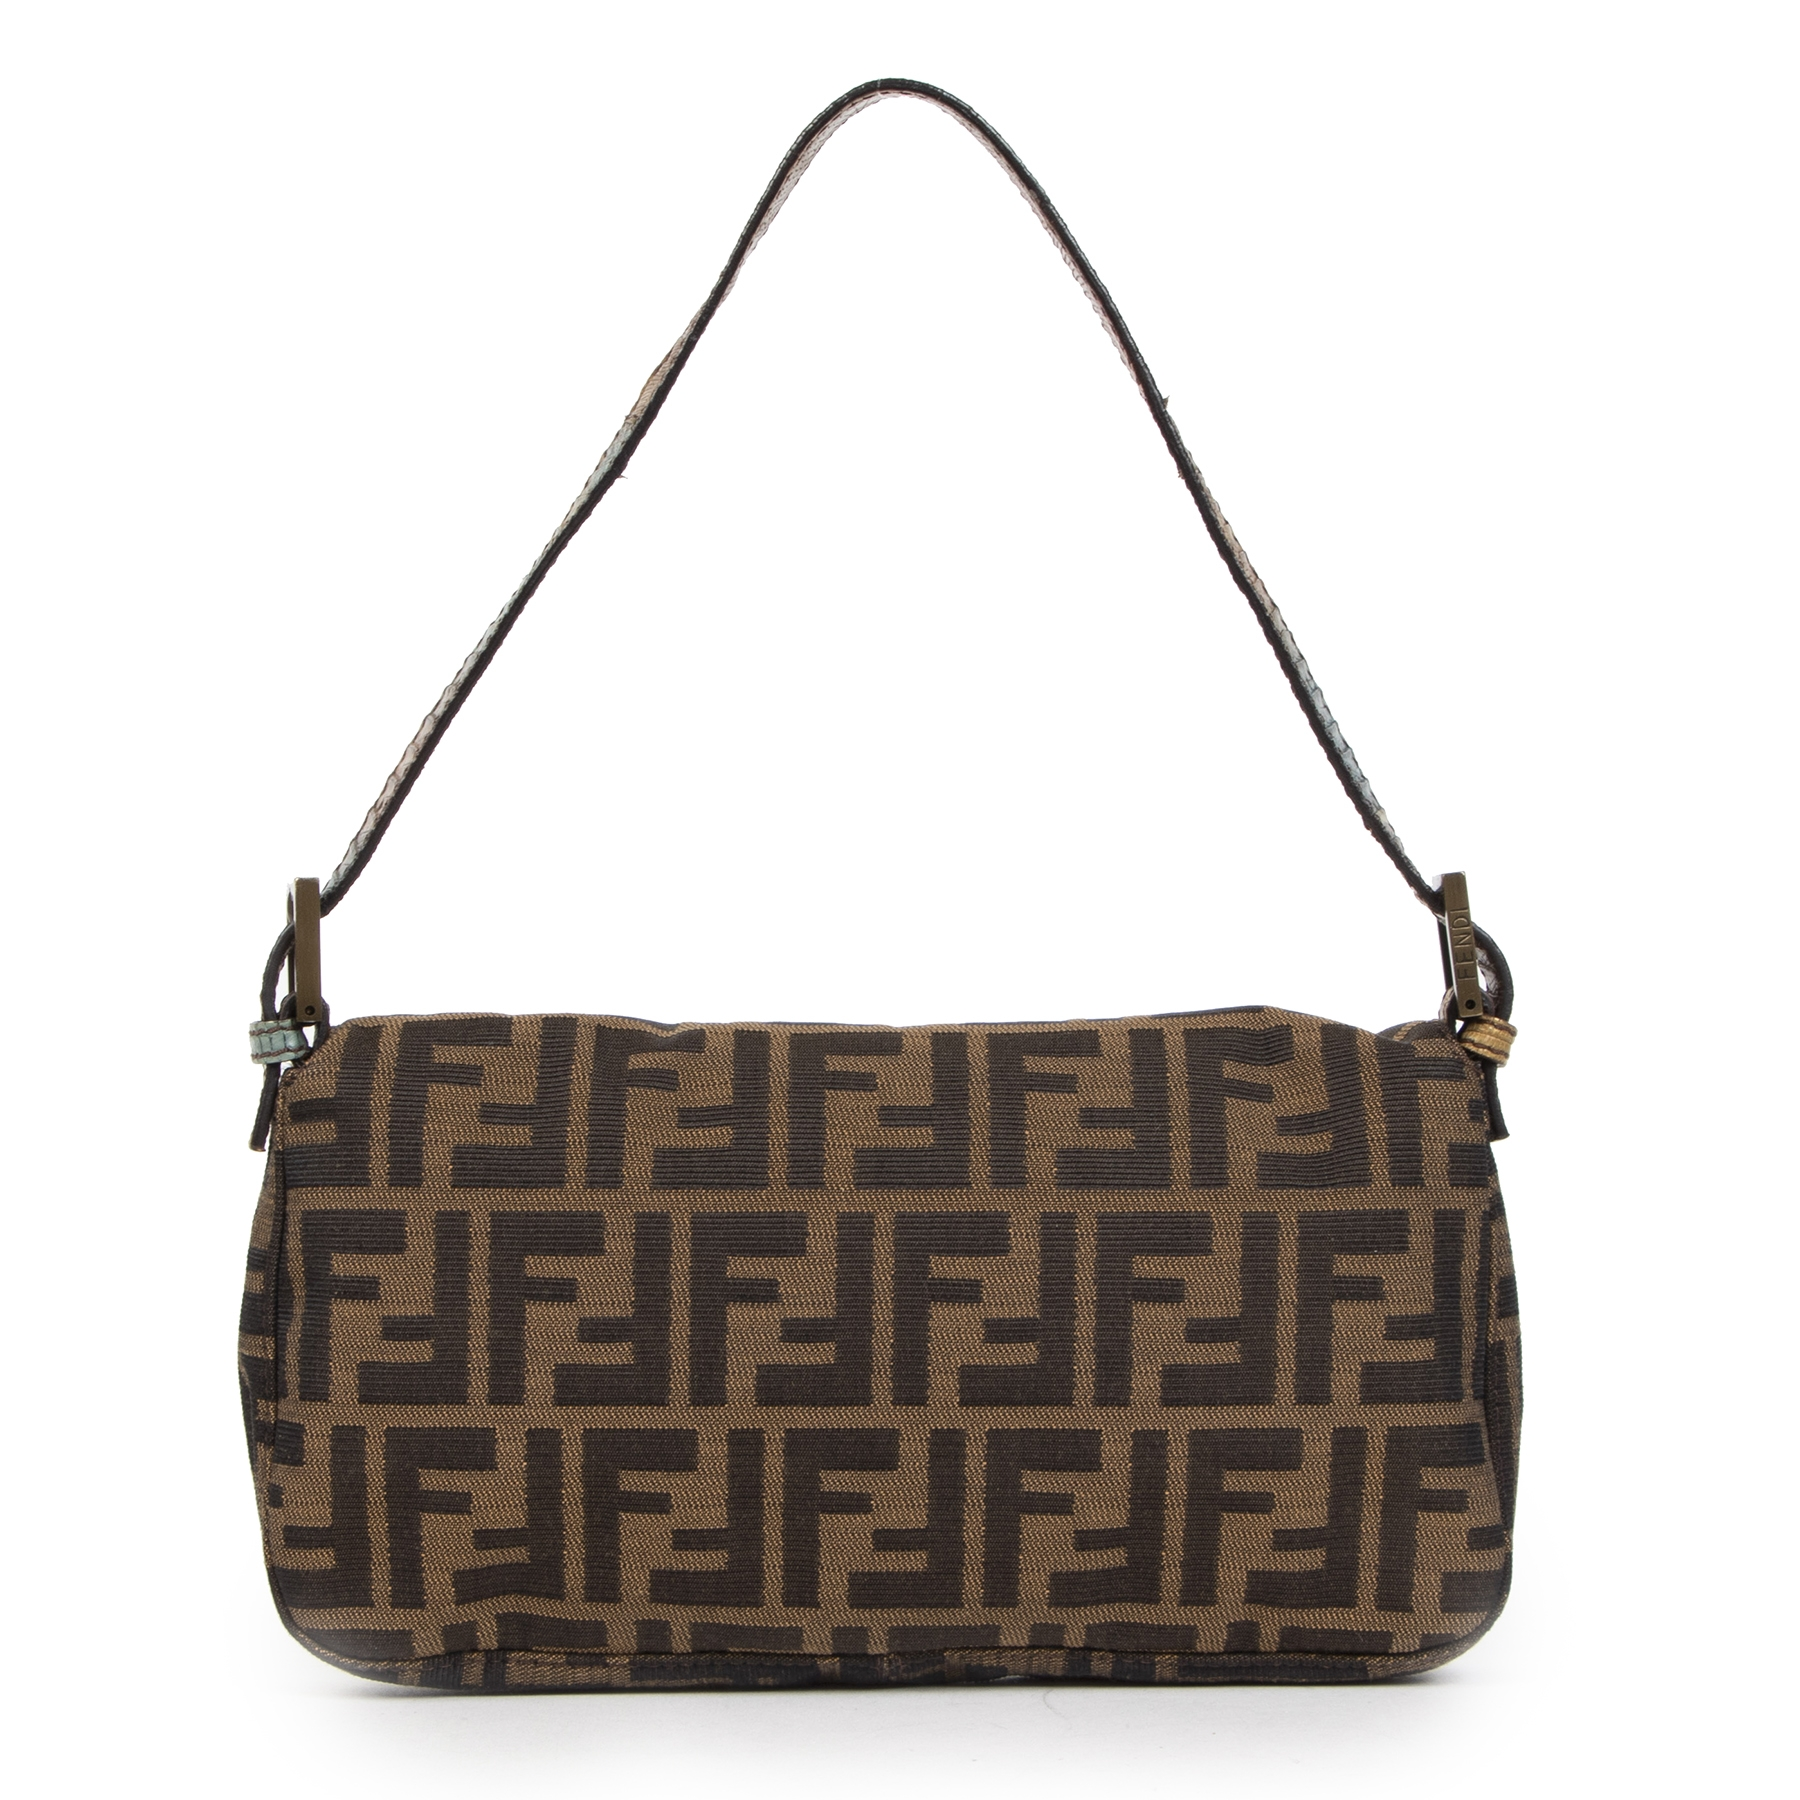 Authentieke tweedehands vintage Fendi Leopard Print Pony Hair Baguette Bag koop online webshop LabelLOV